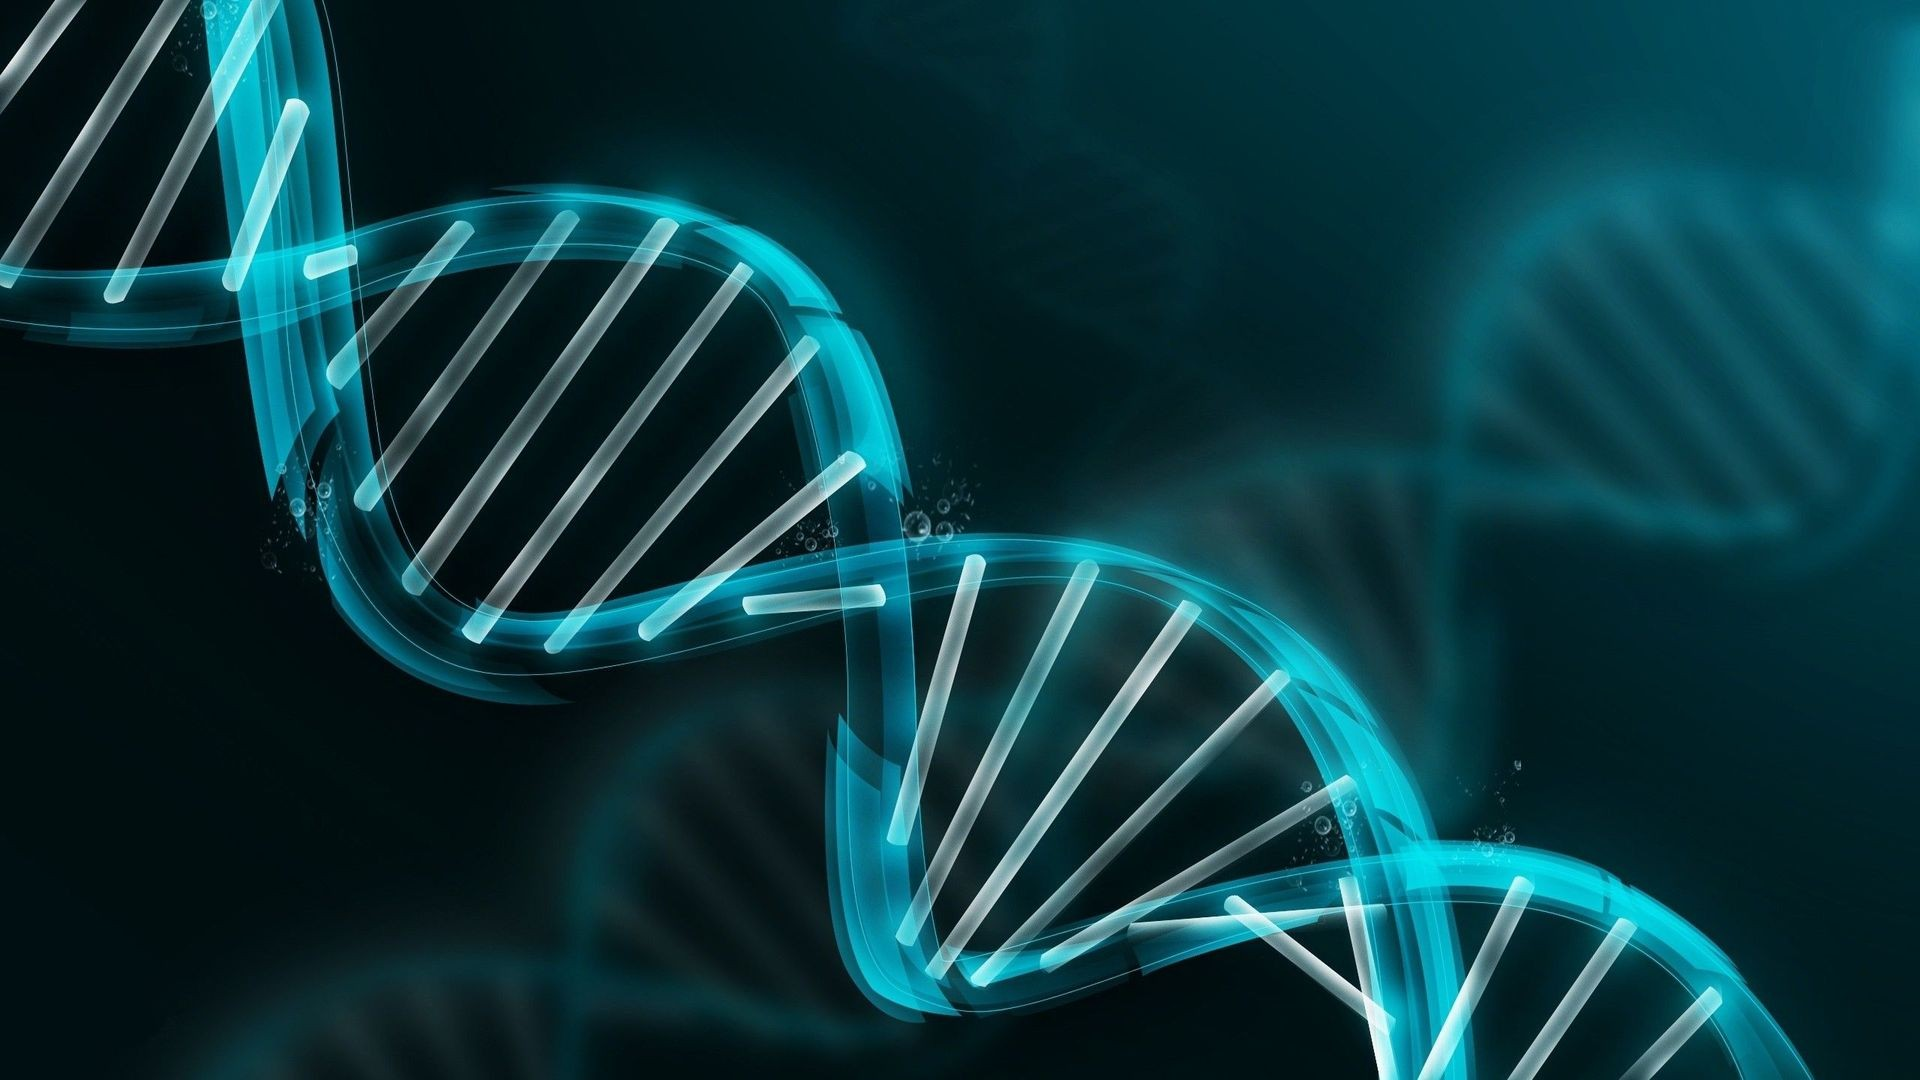 DNA Wallpaper 1 Download Free Cool High Resolution Backgrounds For